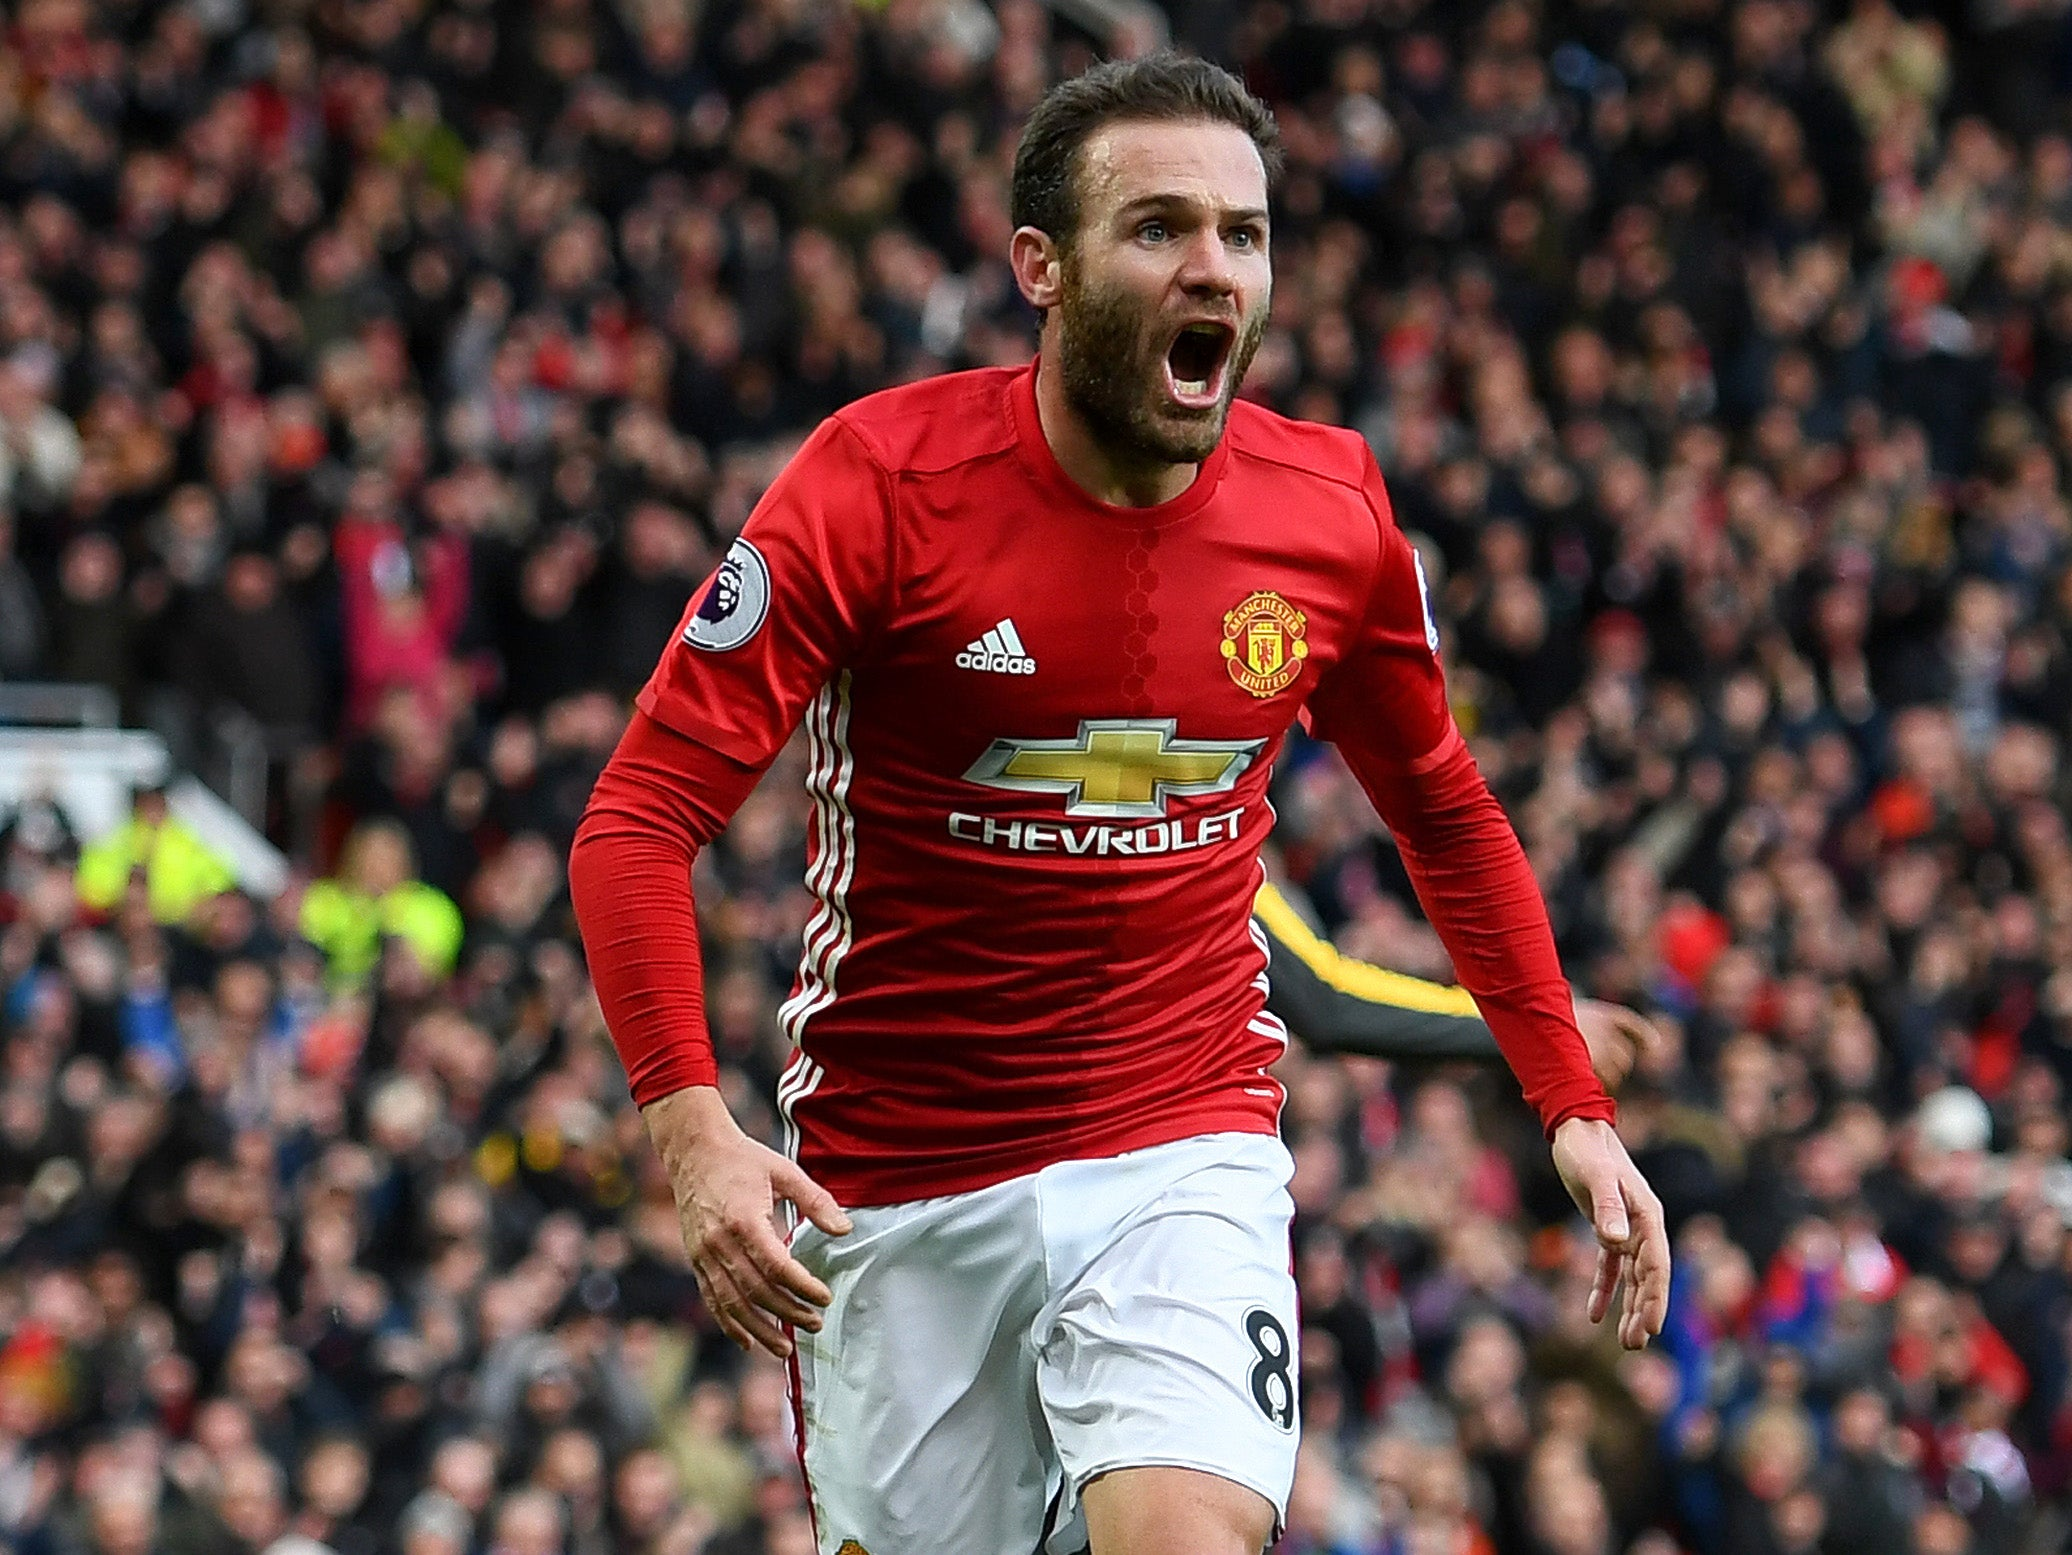 Manchester United news: Jamie Carragher labels Juan Mata as one of the league's most underrated players